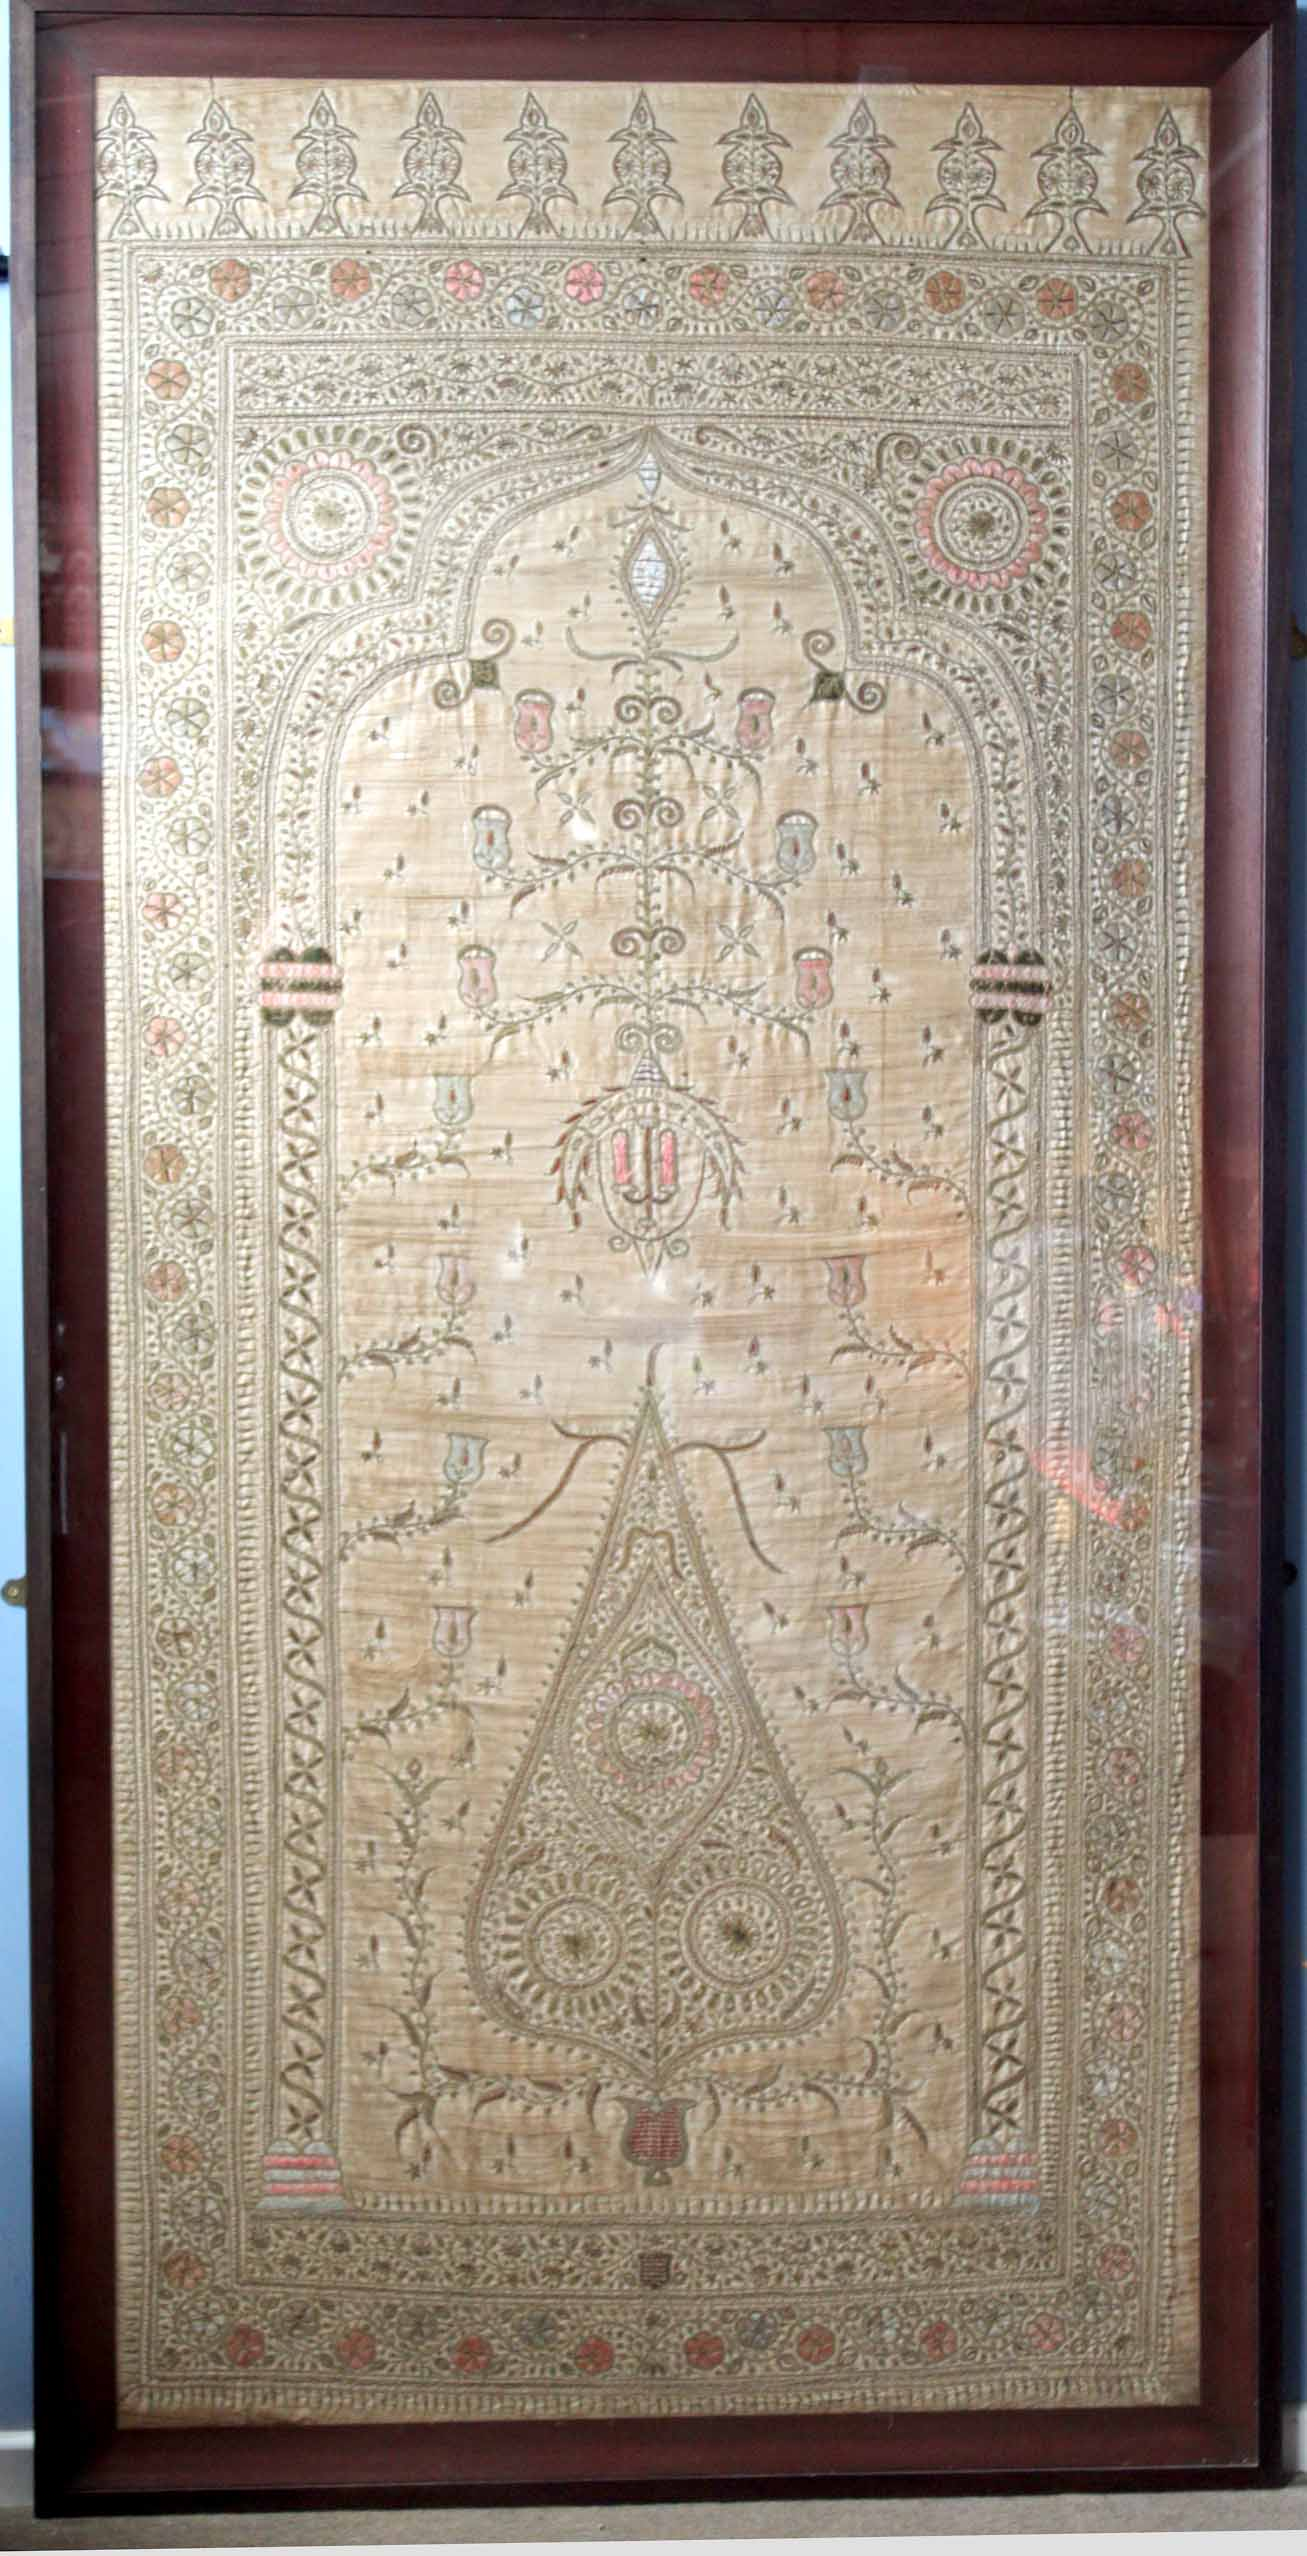 Lot 719 - Large silk and gilt filigree embroidered wall hanging or table cloth of Persian or Oriental